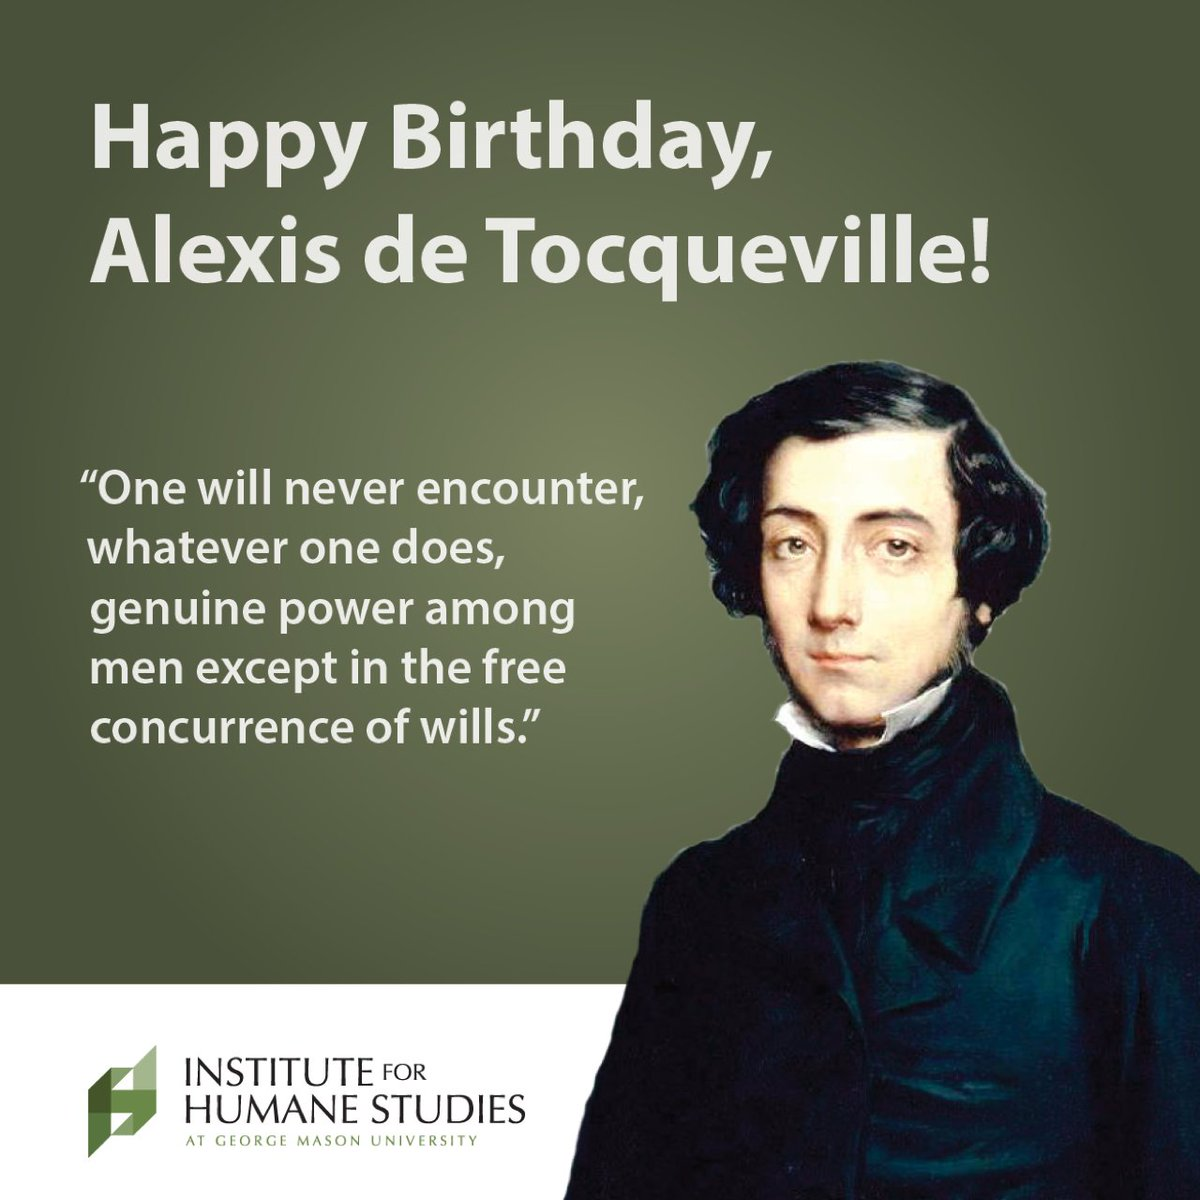 French political scientist Alexis de Tocqueville was born 211 years ago today! https://t.co/x154QMG96f